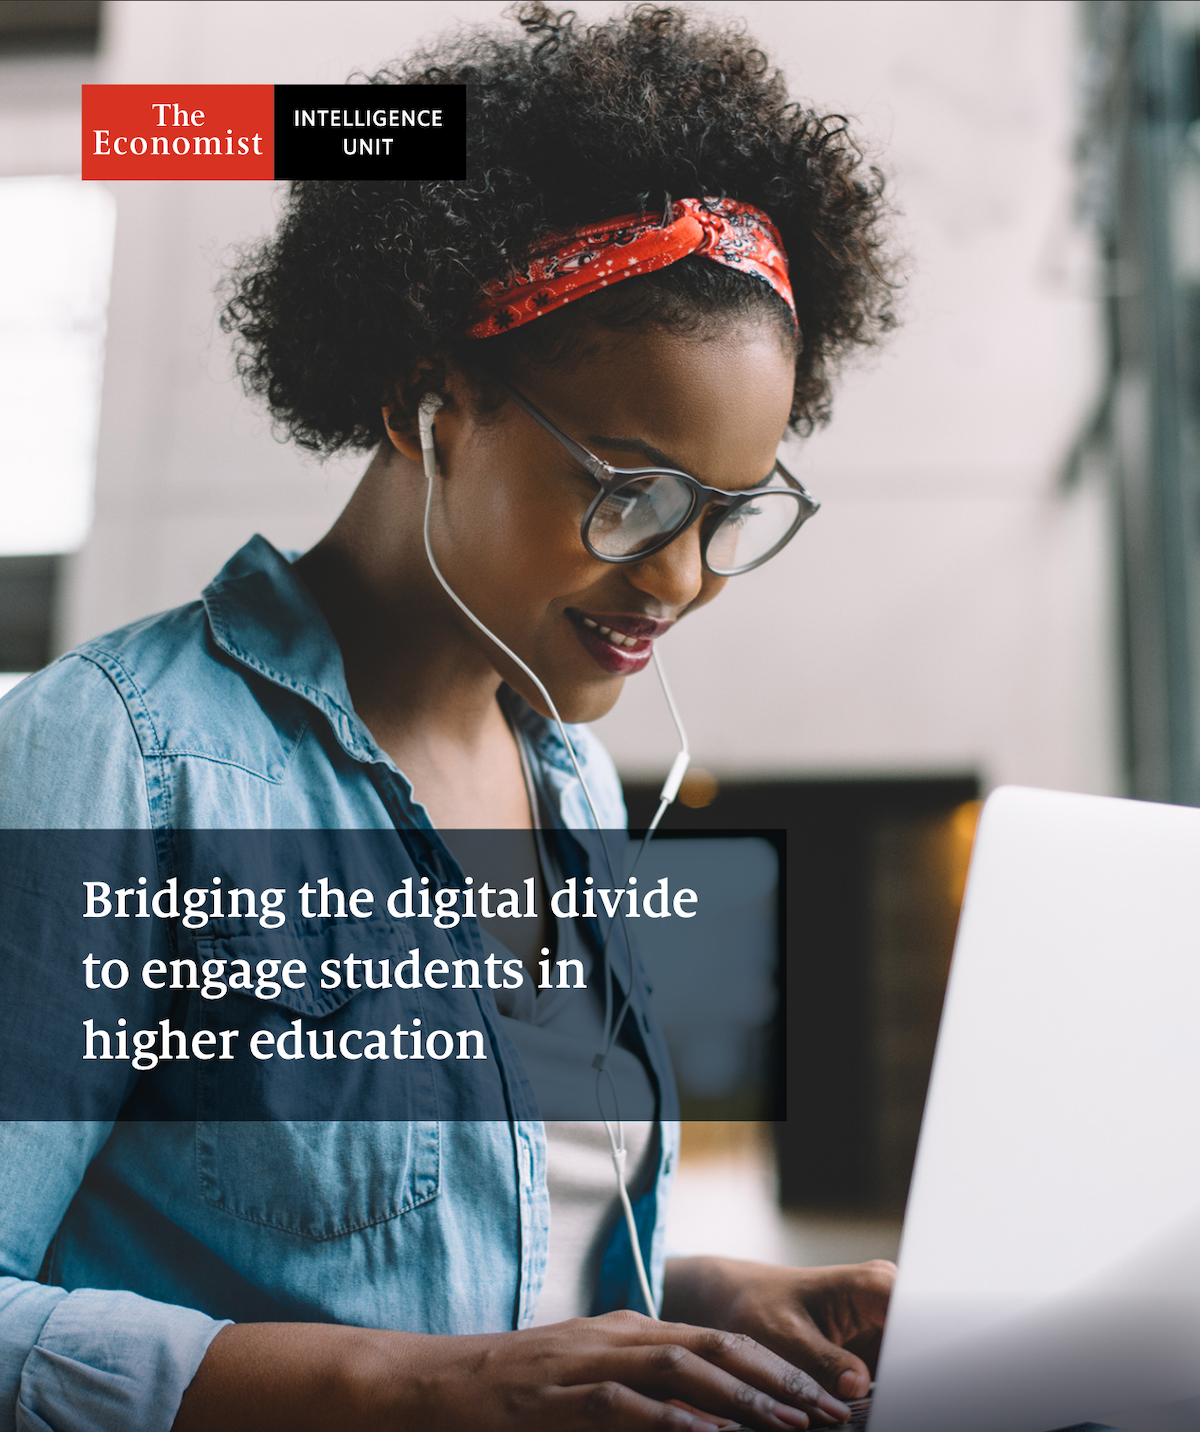 Emily Wasik Navigating the New Higher Education Normal Report Economist Intelligence Unit Microsoft Bridging Digital Divide Student Engagement Teaching Engaging Multimodal Learning Experiences